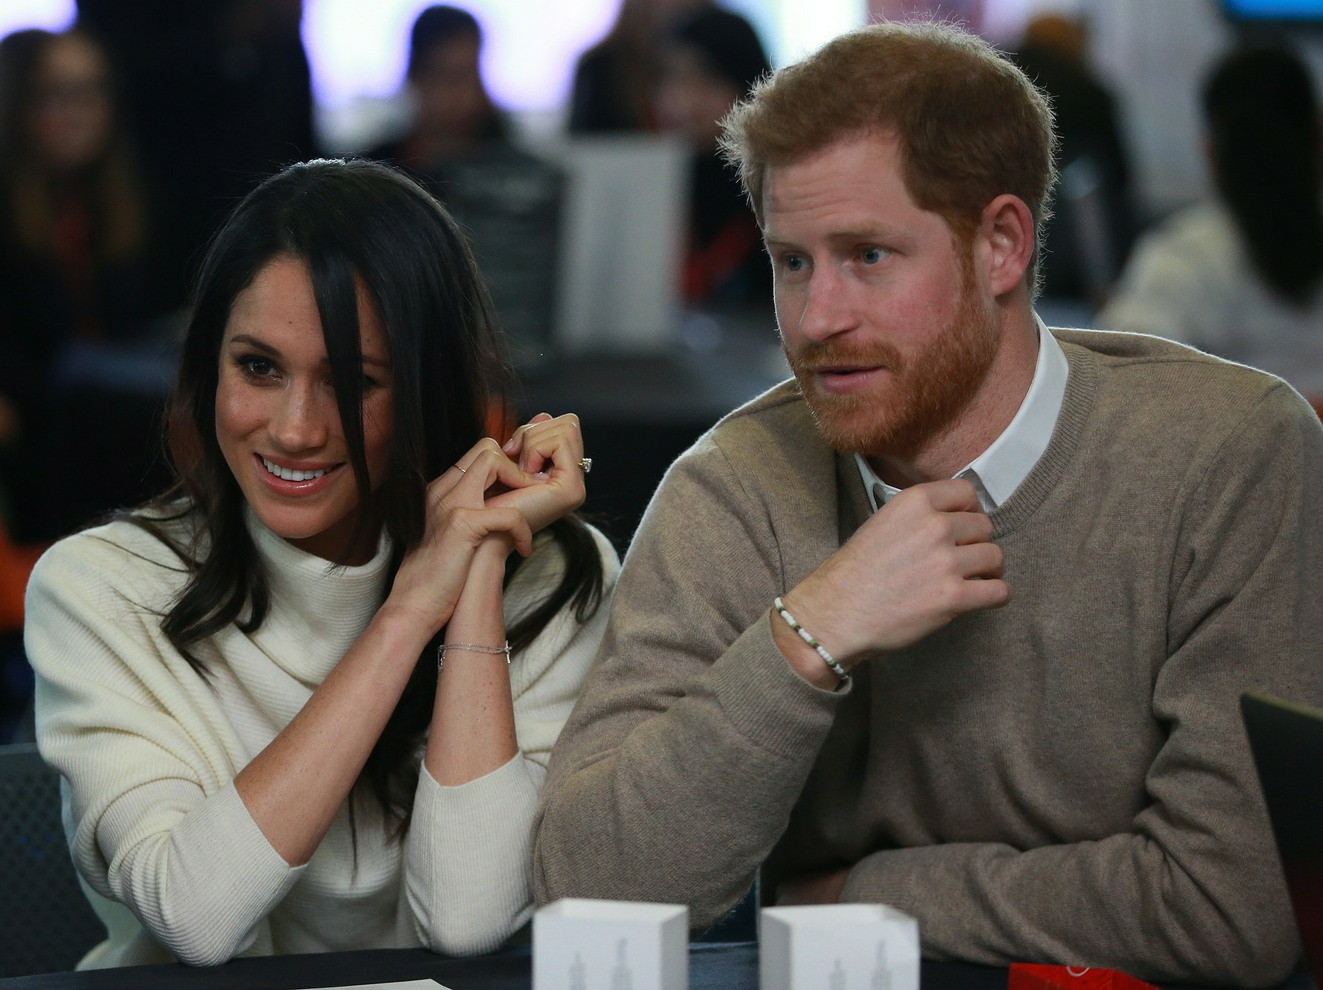 Prince Harry and Meghan Markle attend an event at Millennium Point to celebrate International Women's Day in Birmingham